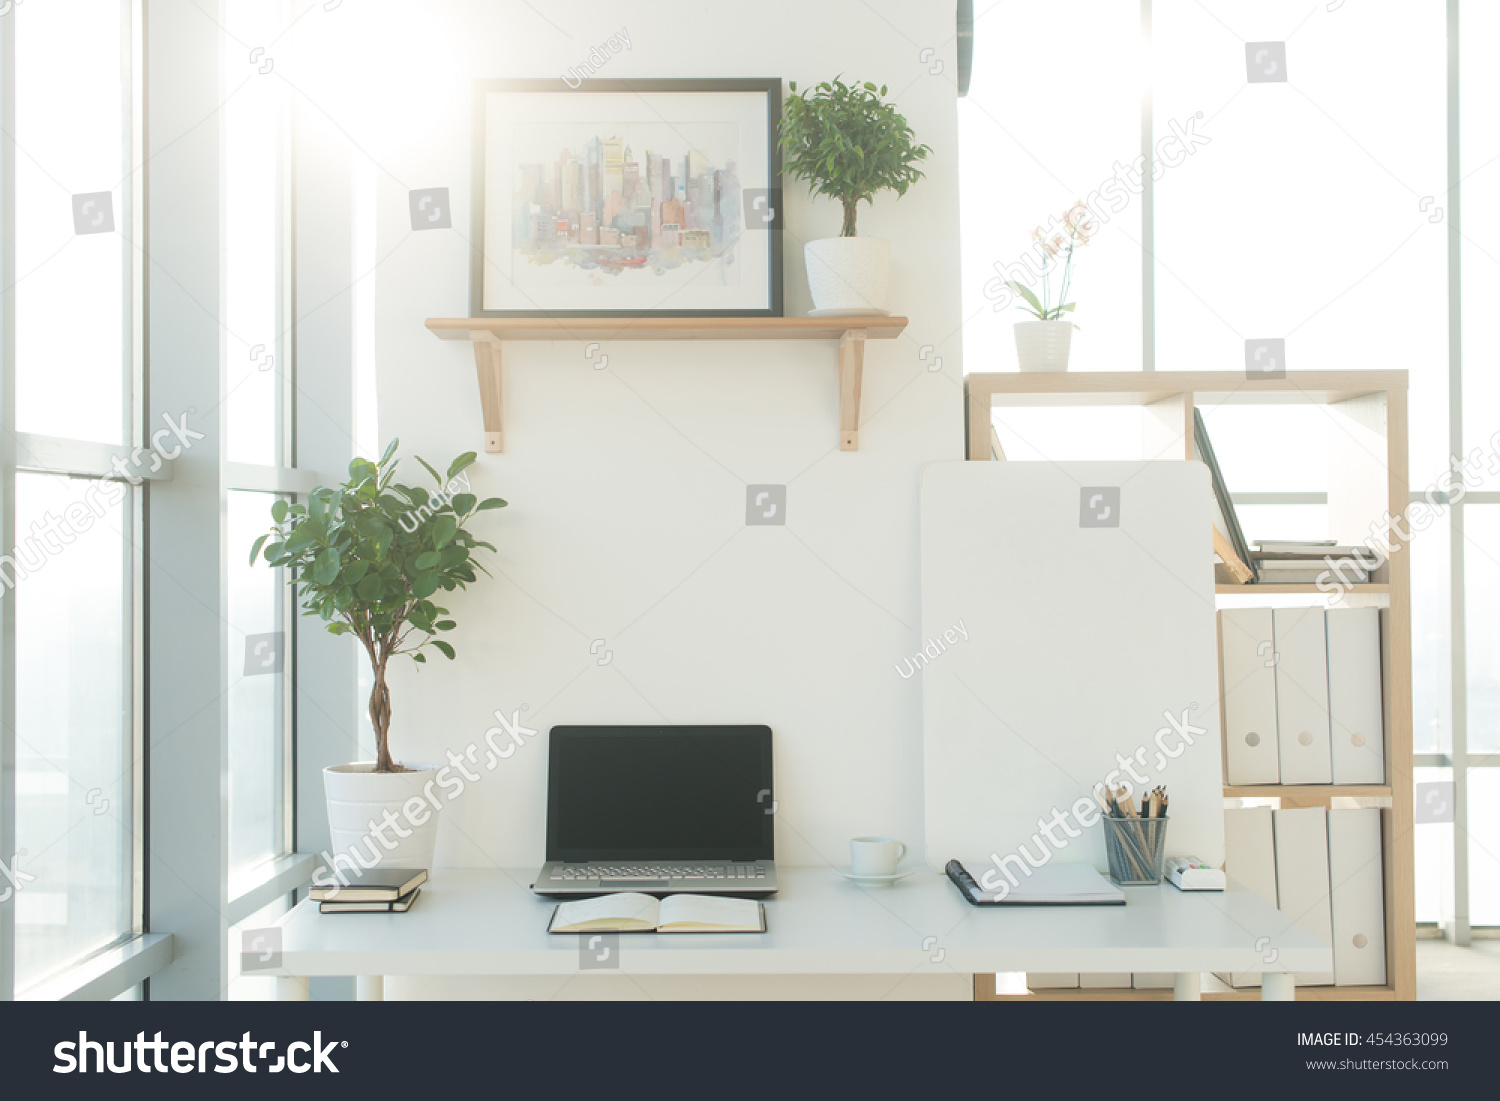 Front View Picture Studio Workplace Blank Stock Photo (Safe to Use ...